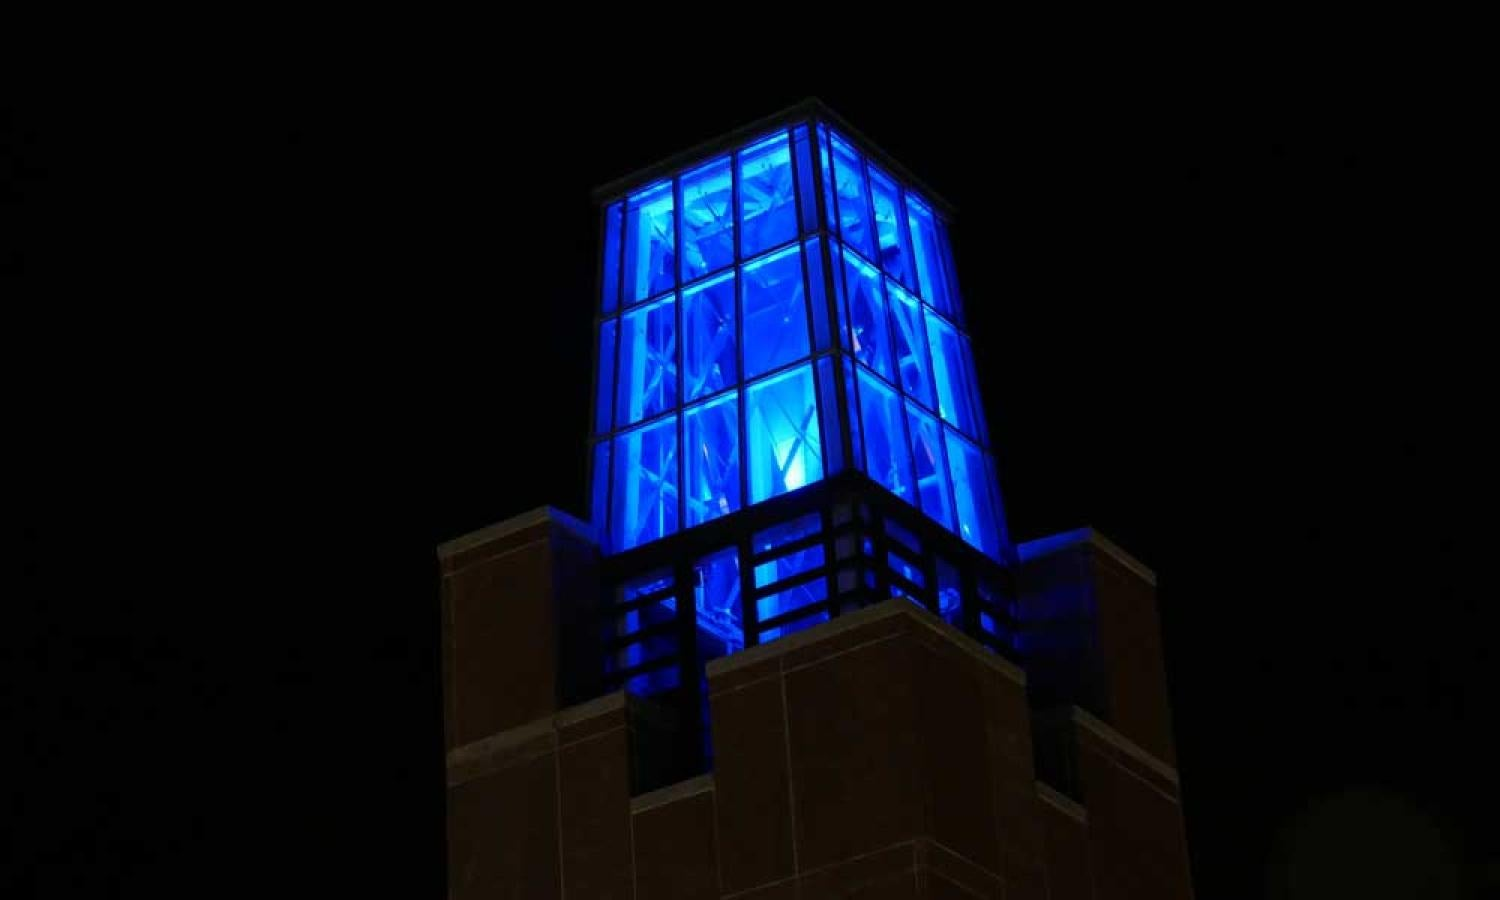 ATLAS tower with blue light